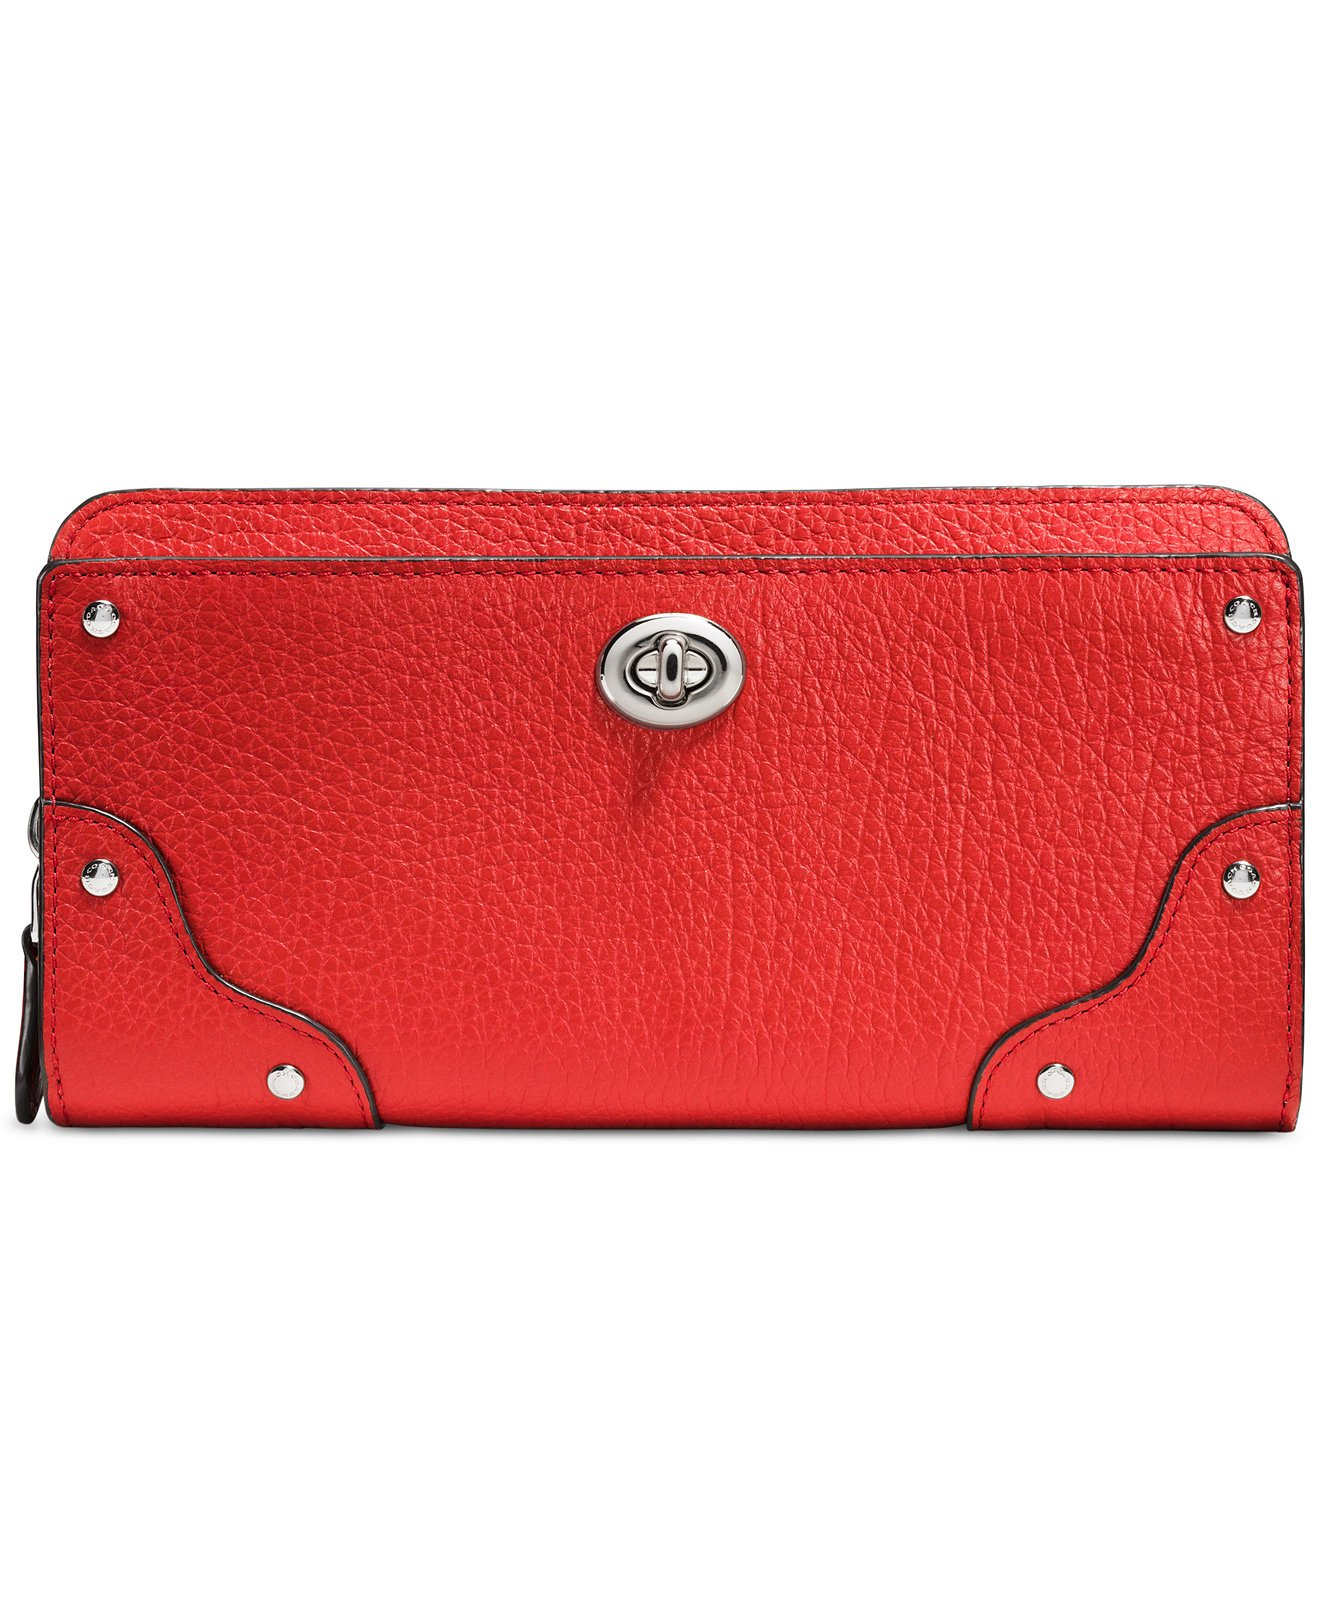 COACH Mercer Accordion Zip Wallet in Grain Leather, Silver/Carmine